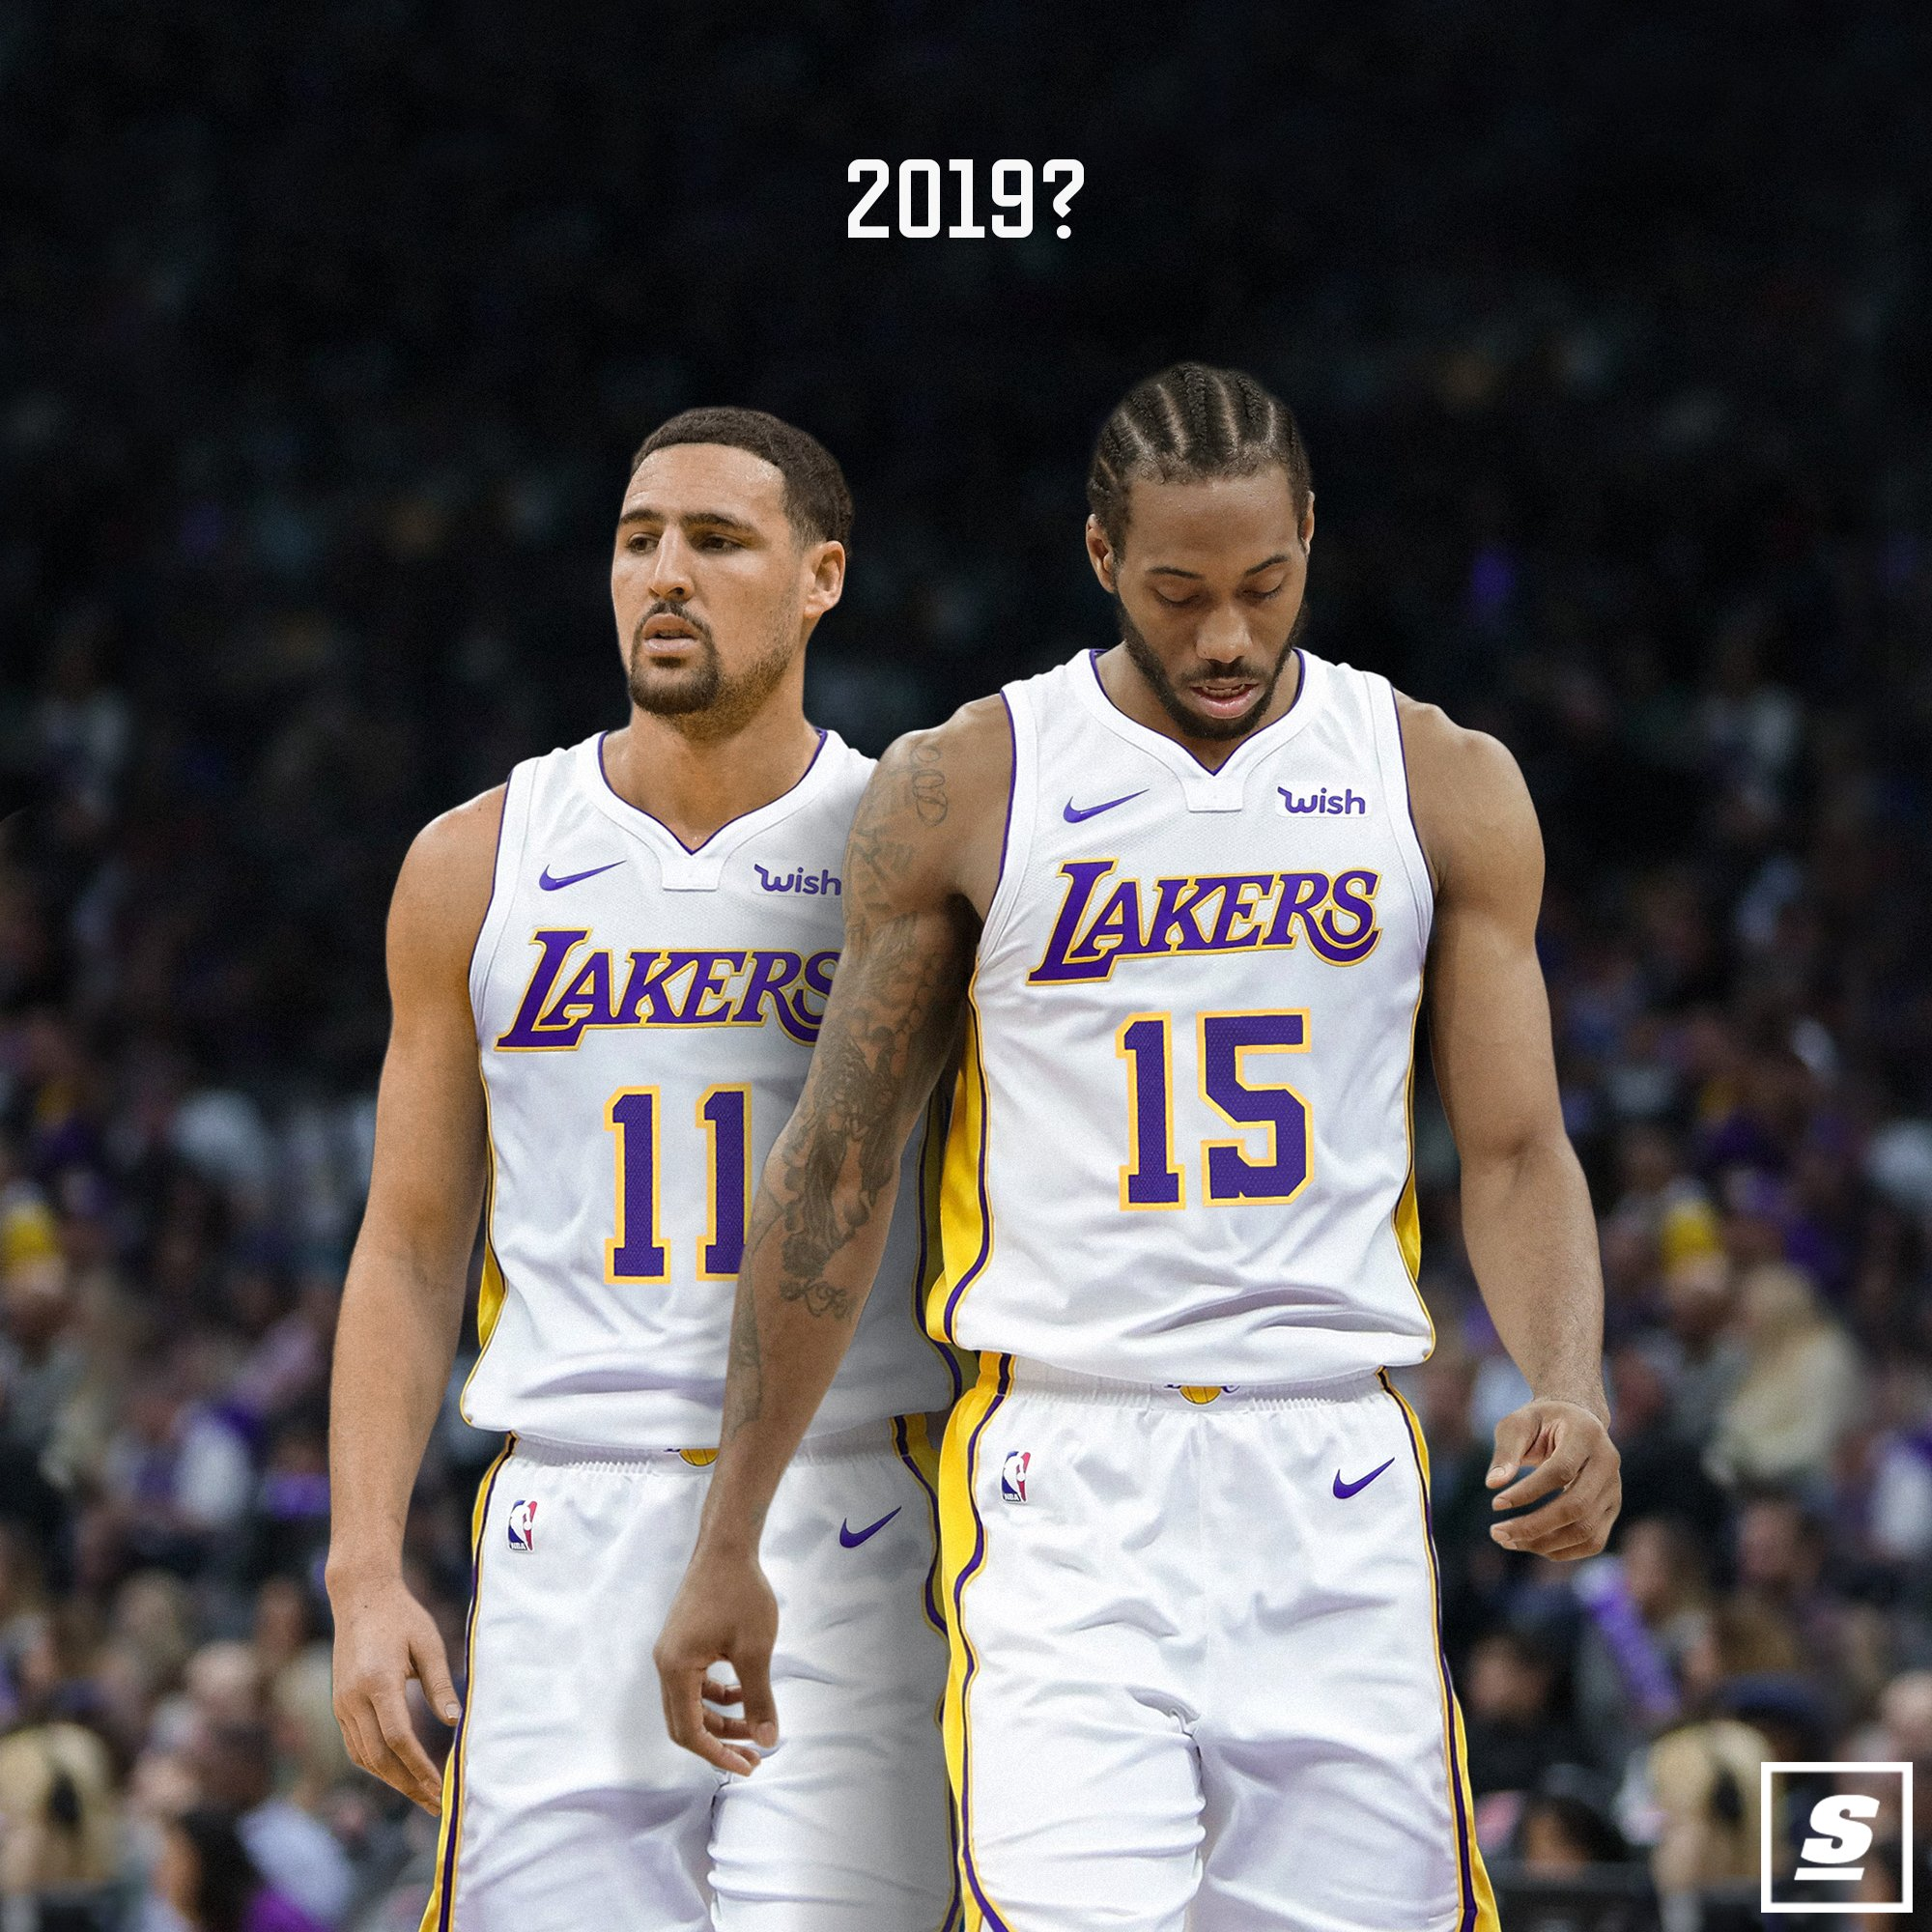 Could be a much different looking @Lakers squad coming our way in 2019. �� https://t.co/sYnqK5sxHp https://t.co/apNCY1oZpn